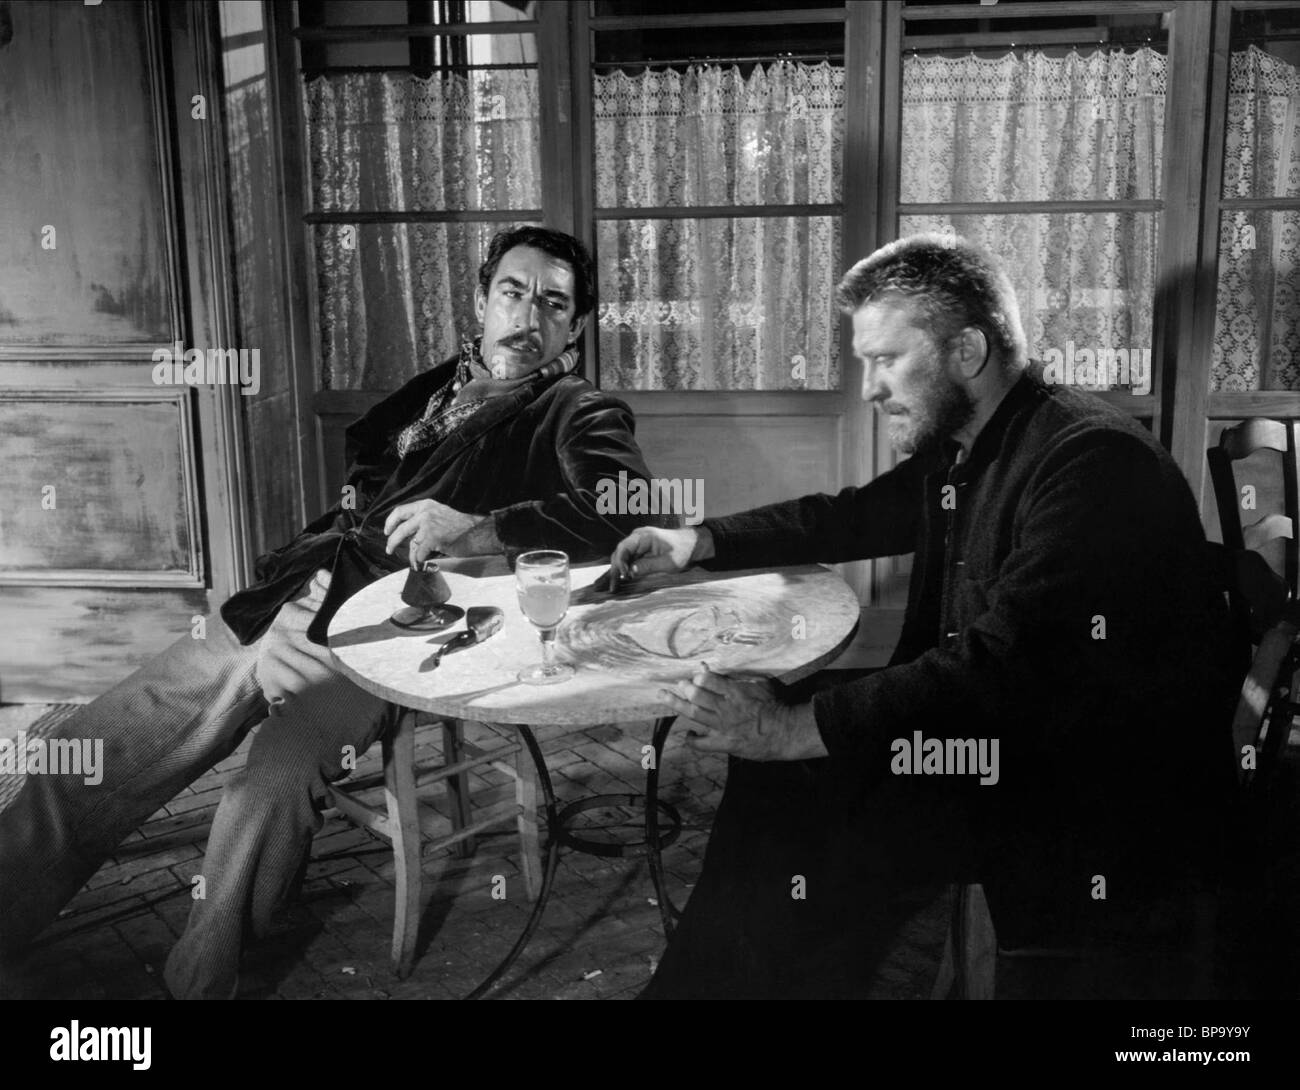 ANTHONY QUINN & KIRK DOUGLAS LUST FOR LIFE - VINCENT VAN GOUGH (1956)Stock Photo